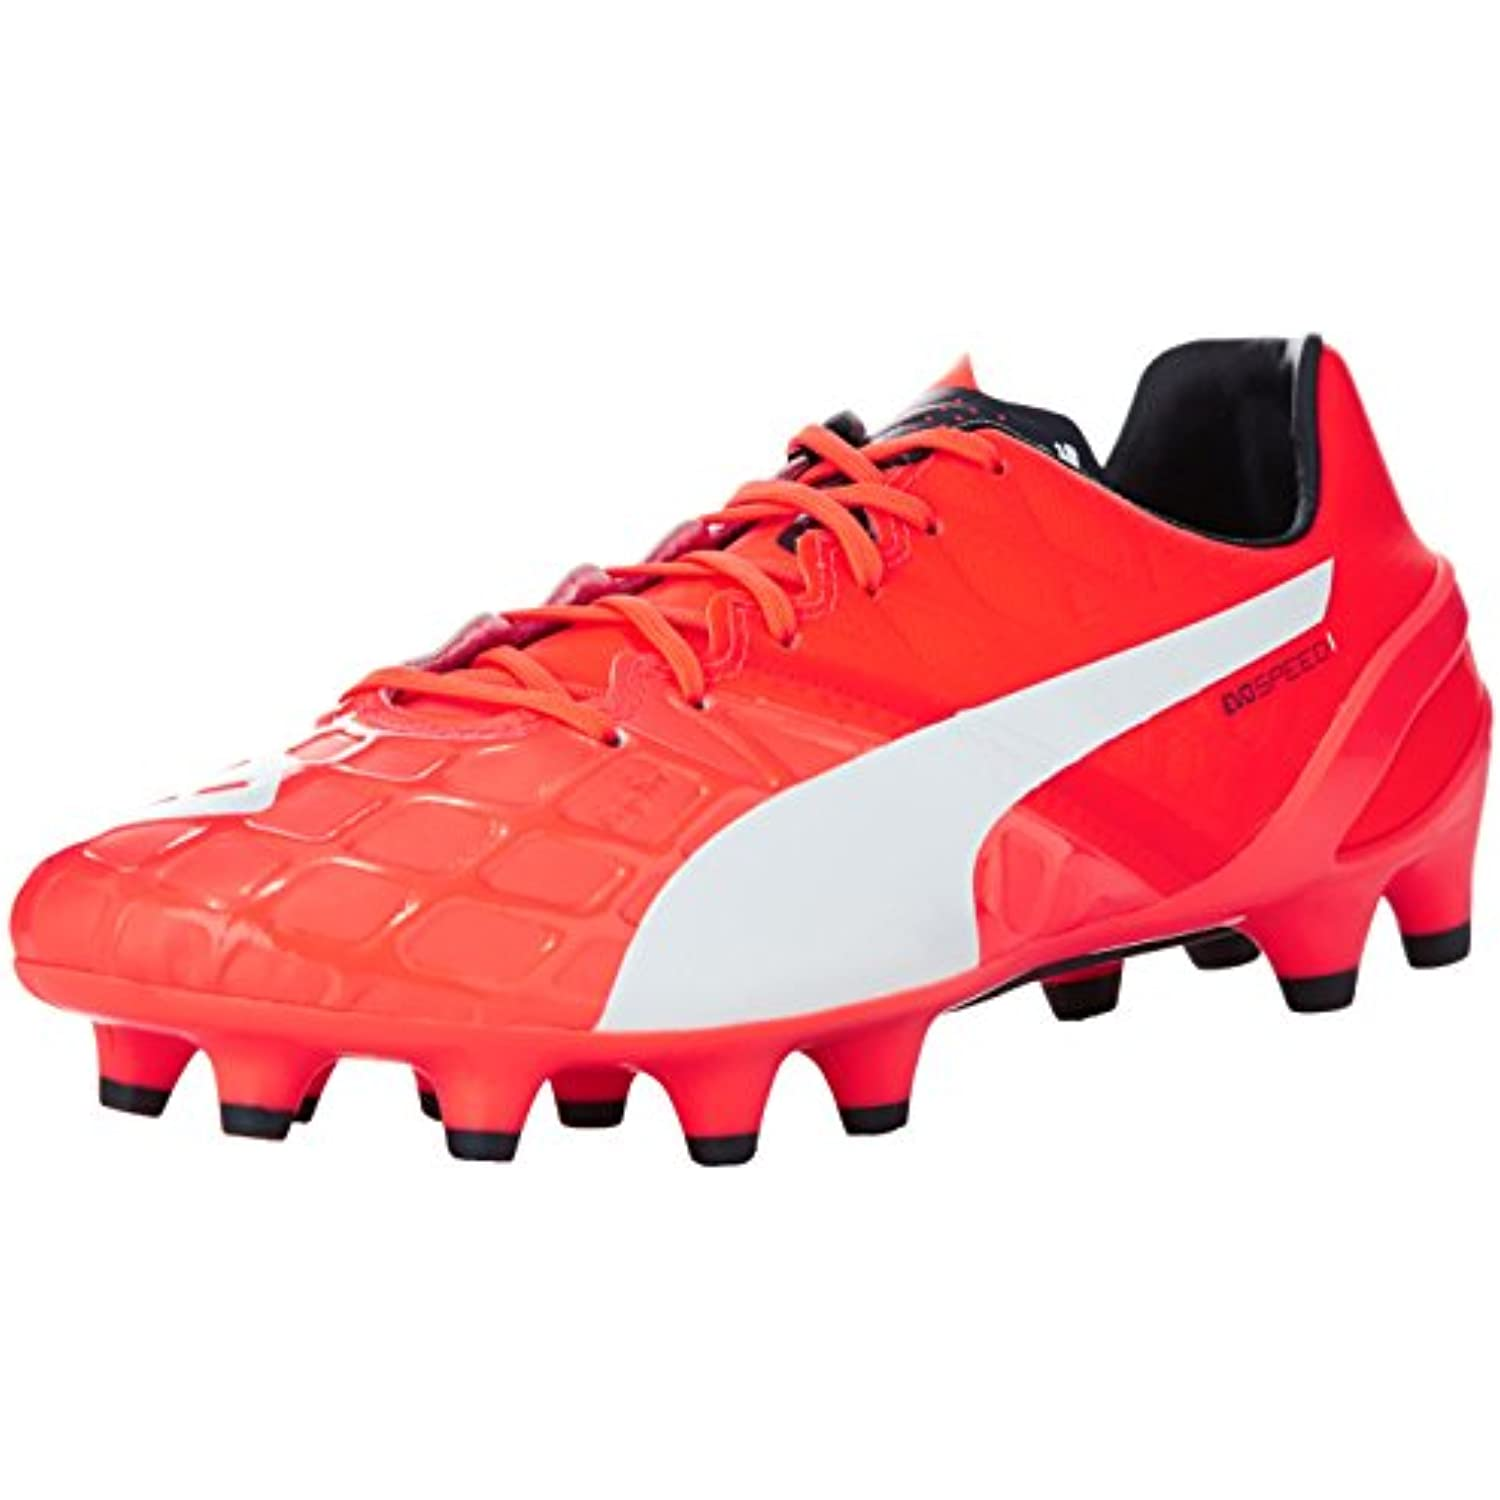 Puma Evospeed de FG, Chaussures de Evospeed Football Hommes - B00WM90ACA - ff4b84